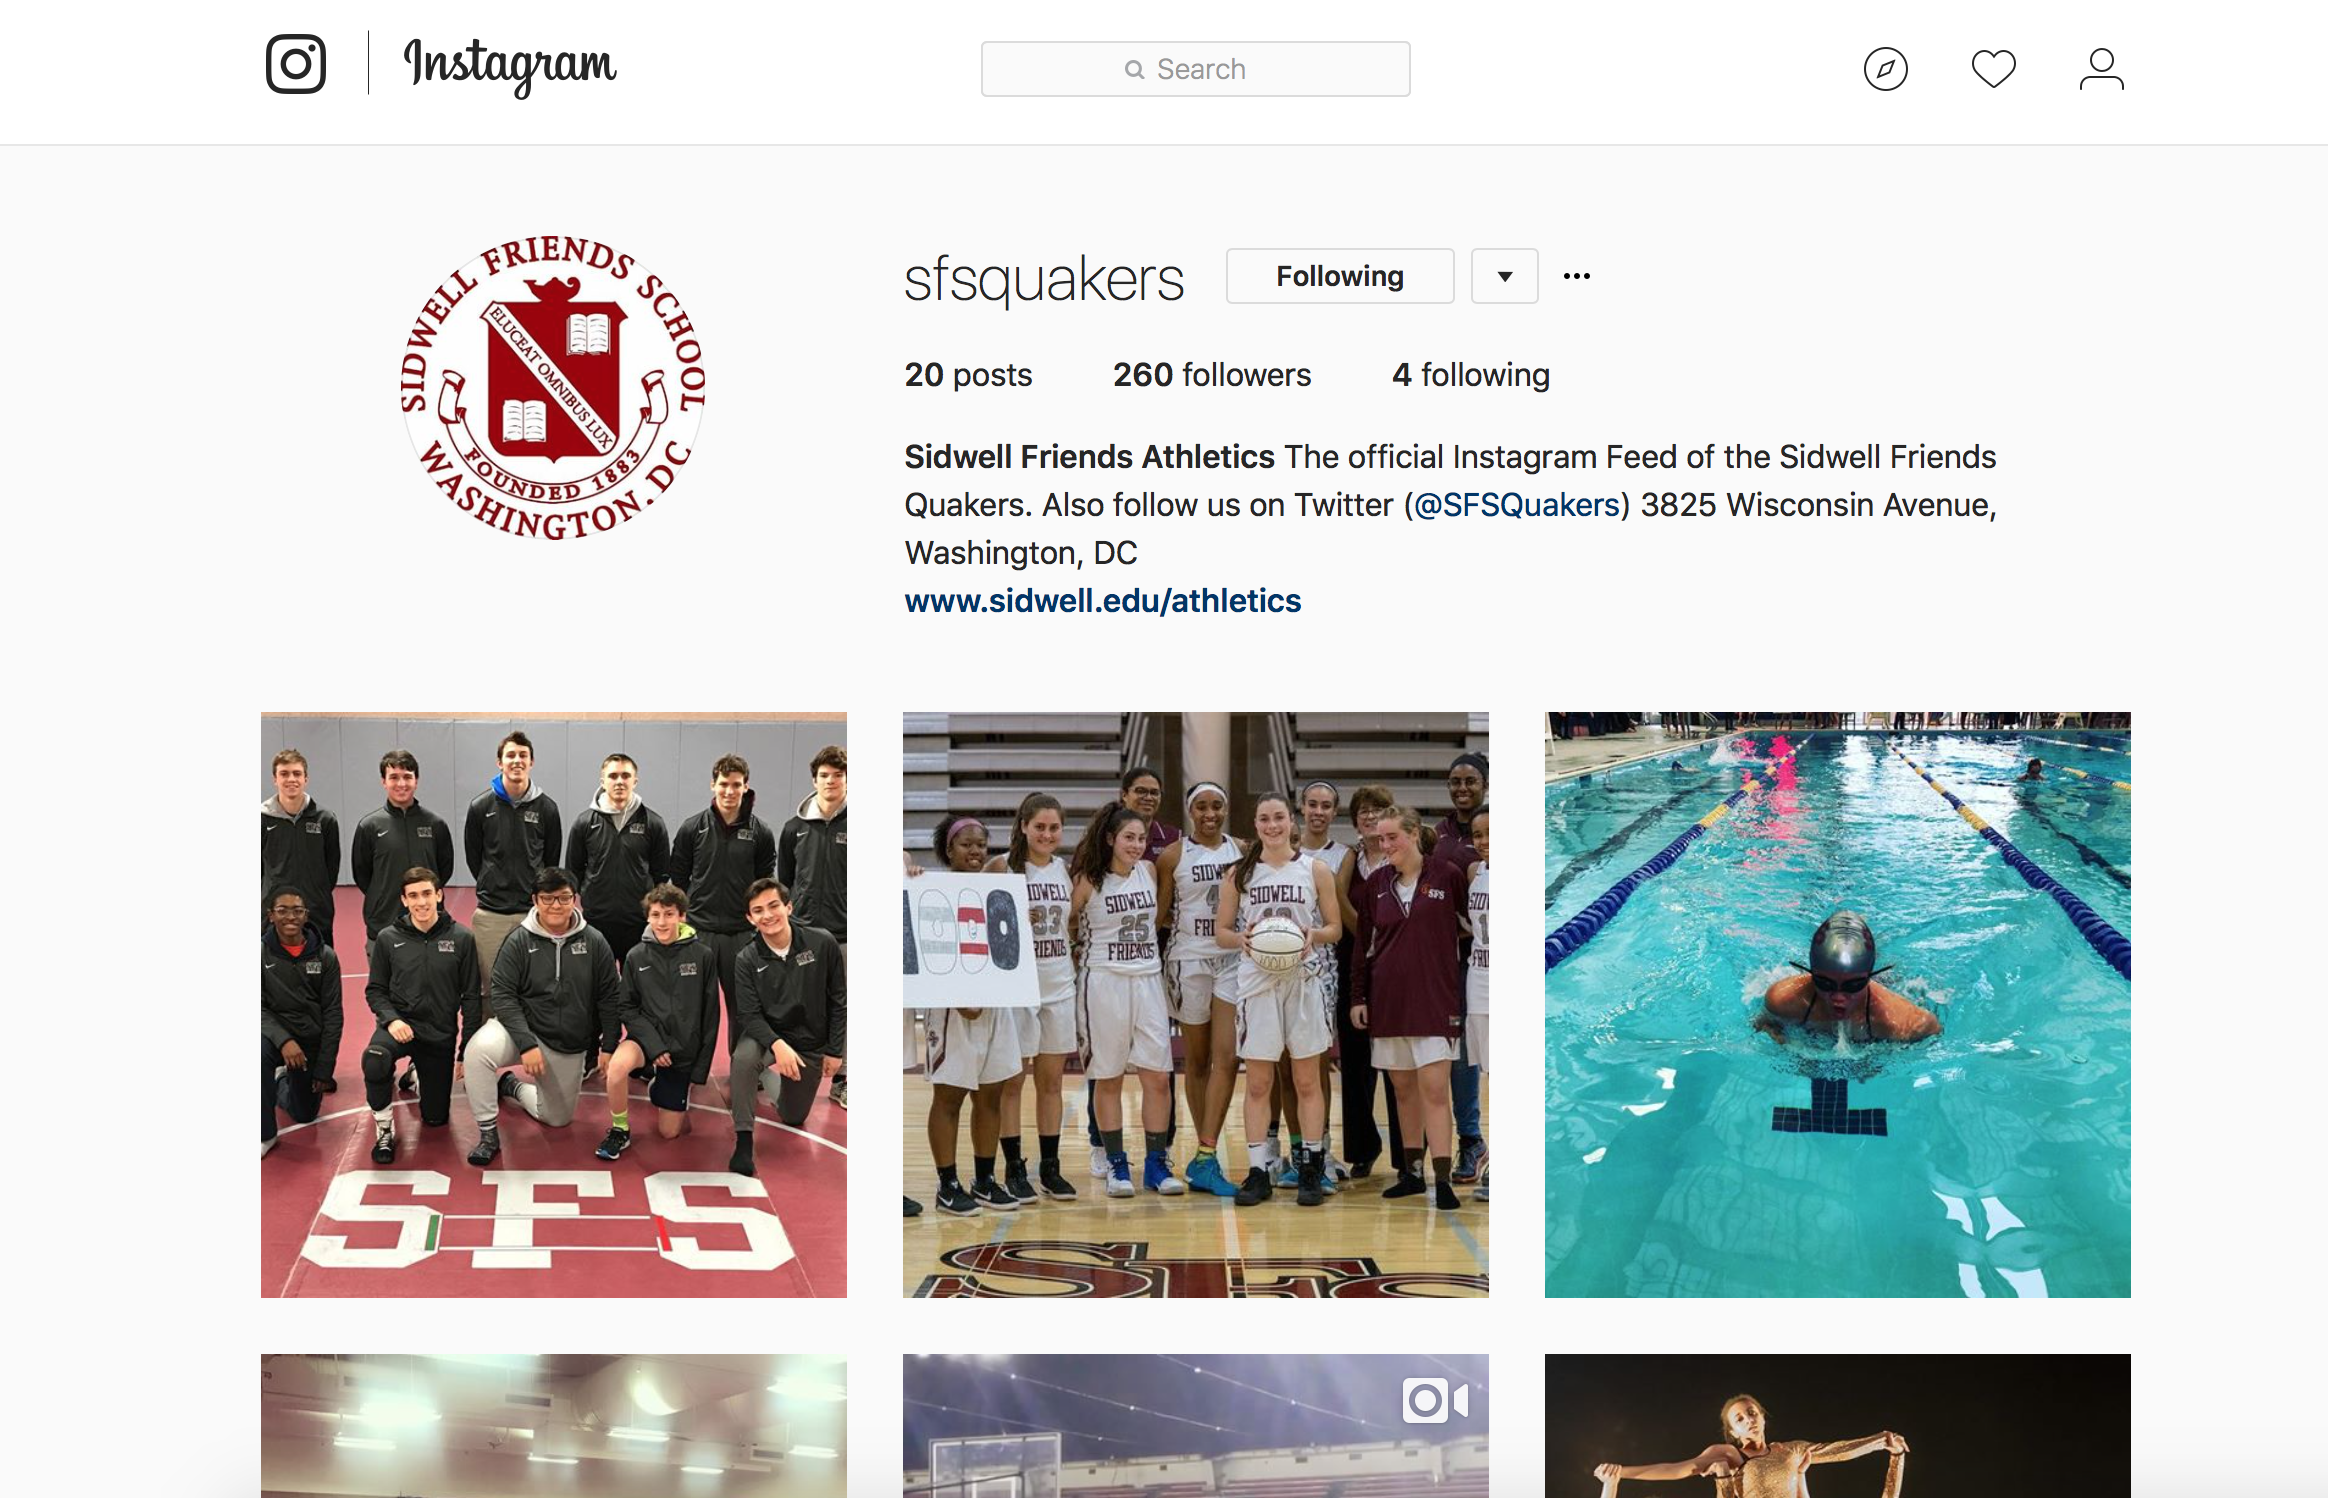 Sidwell Friends Athletics enters Social Media Platforms